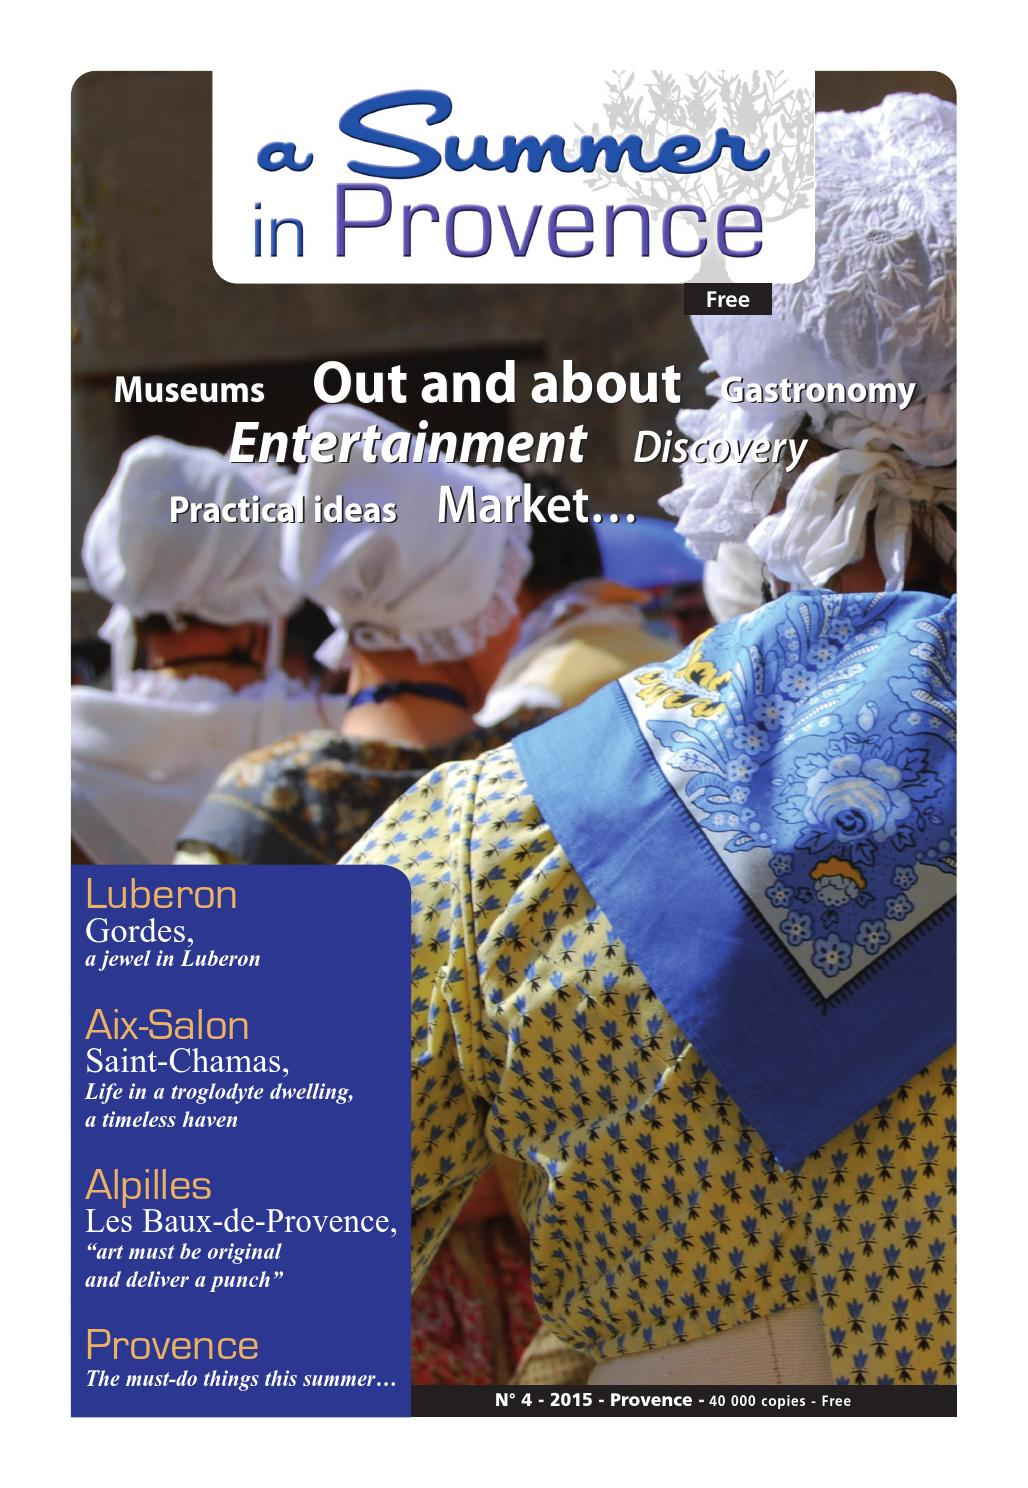 Cuisines Fabre Robion 84 A Summer In Provence 2015 By A Summer In Provence Issuu